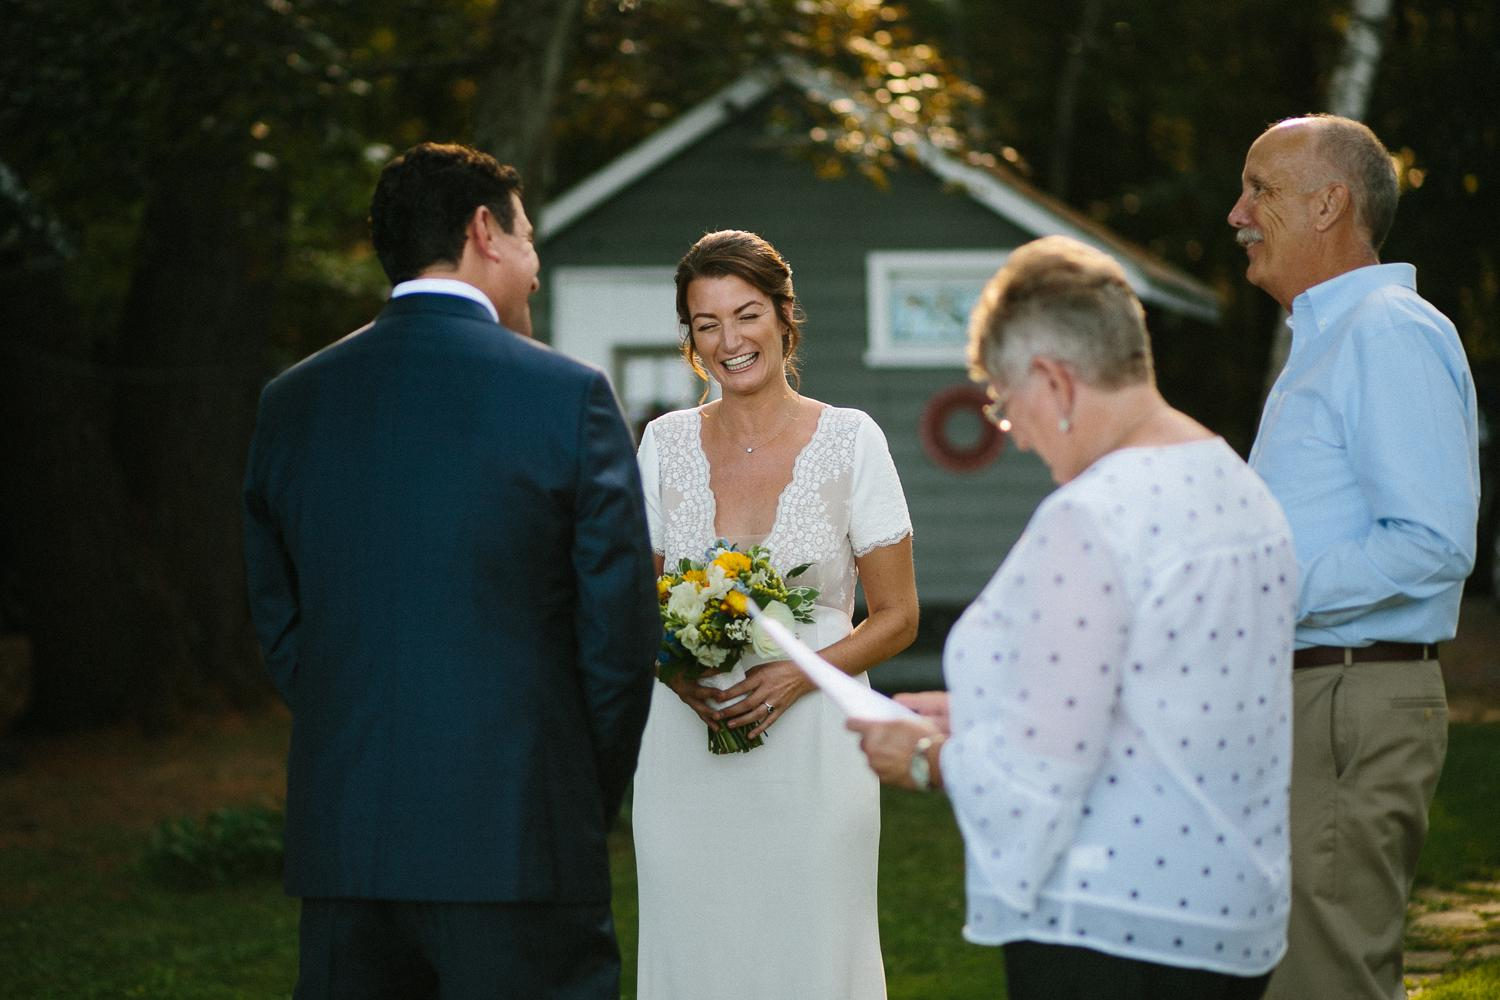 otty lake cottage wedding perth ontario-071.jpg